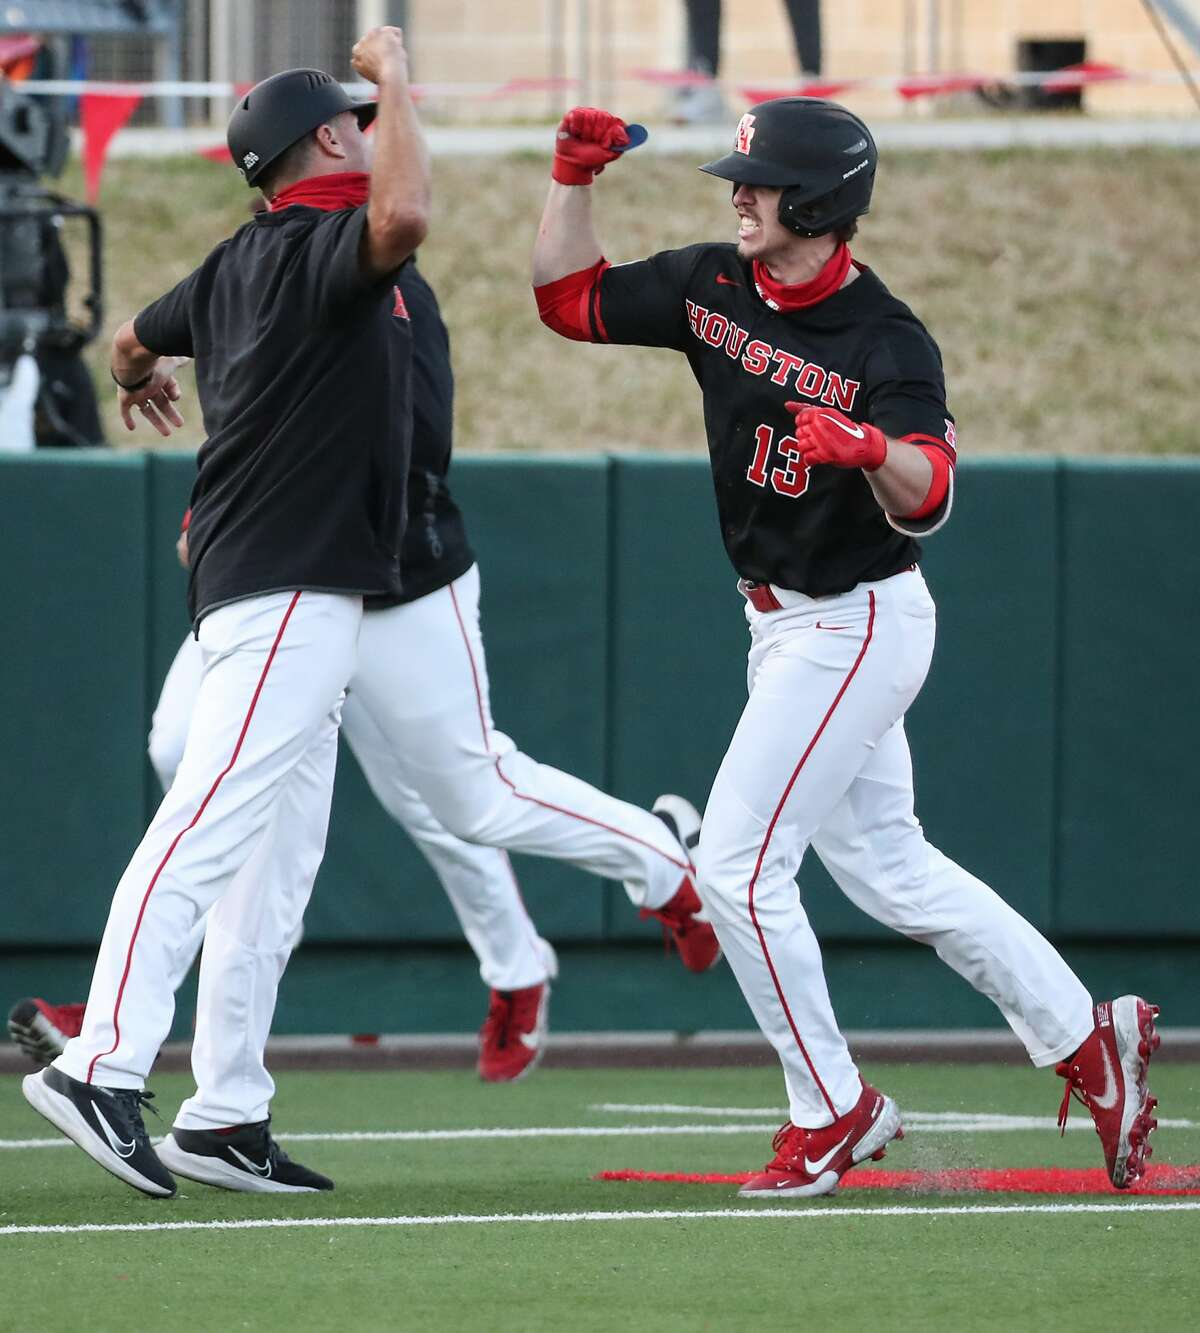 Houston outfielder Tyler Bielamowicz (13) celebrates as he rounds the bases after hitting a walkoff solo home run off Texas reliever Aaron Nixon in the 11th inning of an NCAA college baseball game at Don Sanders Field Saturday, March 6, 2021 in Houston. The Cougars topped the Longhorns 3-2 in 11 innings.